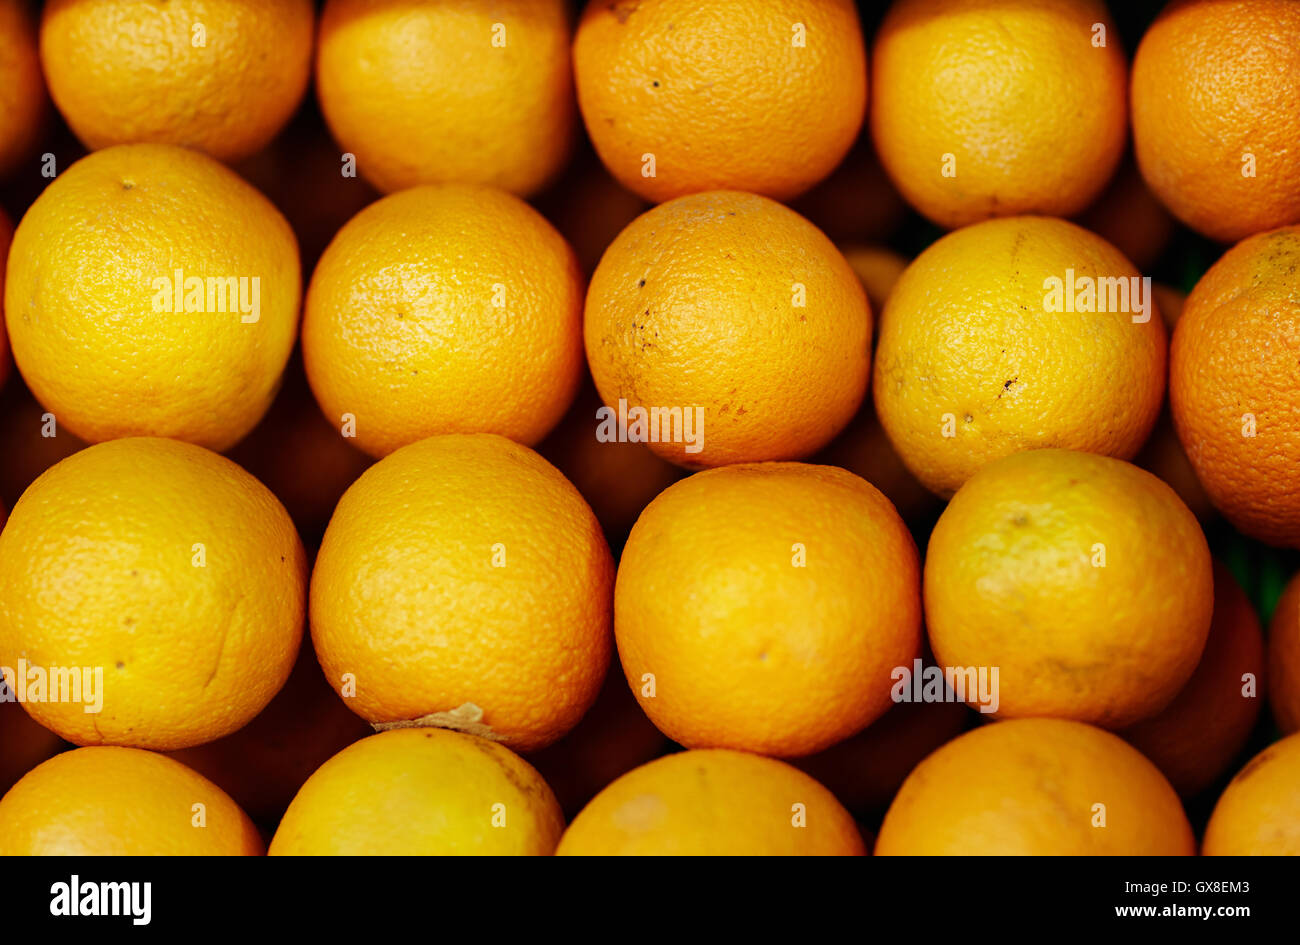 Row of fresh oranges - Stock Image